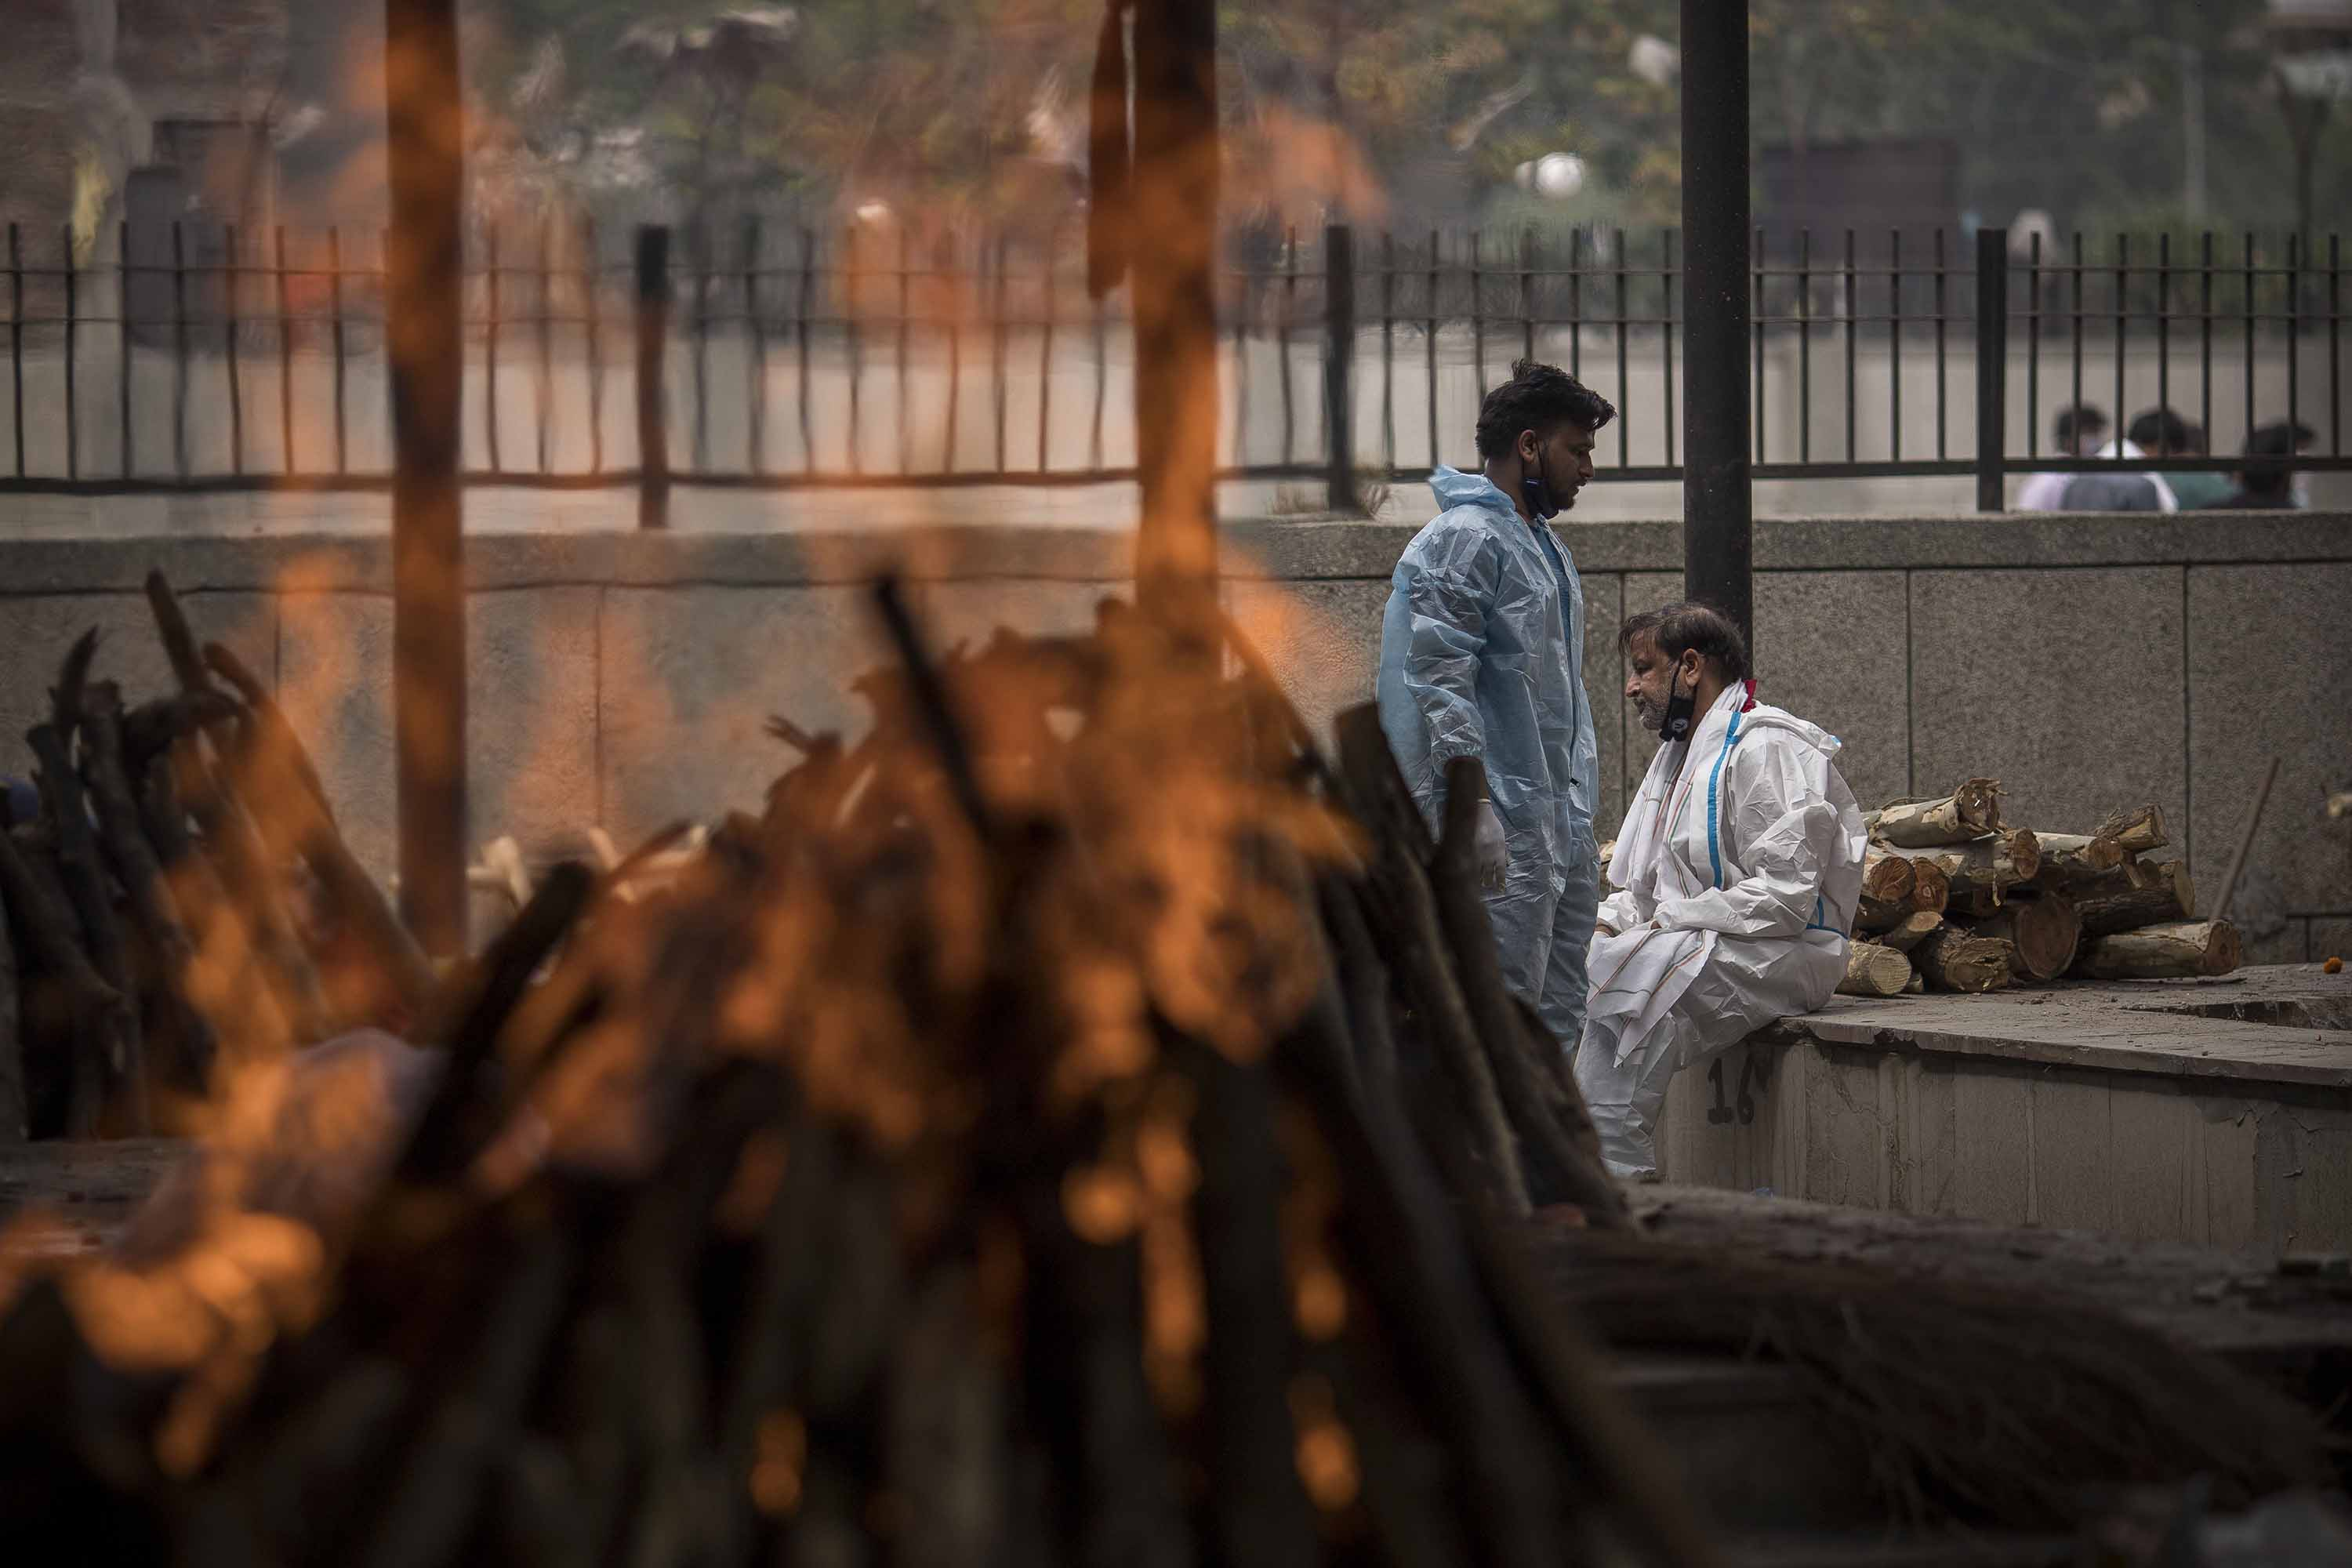 A man performs the last rites for his wife who died of Covid-19 during a mass cremation at a crematorium in New Delhi, India on April 20.